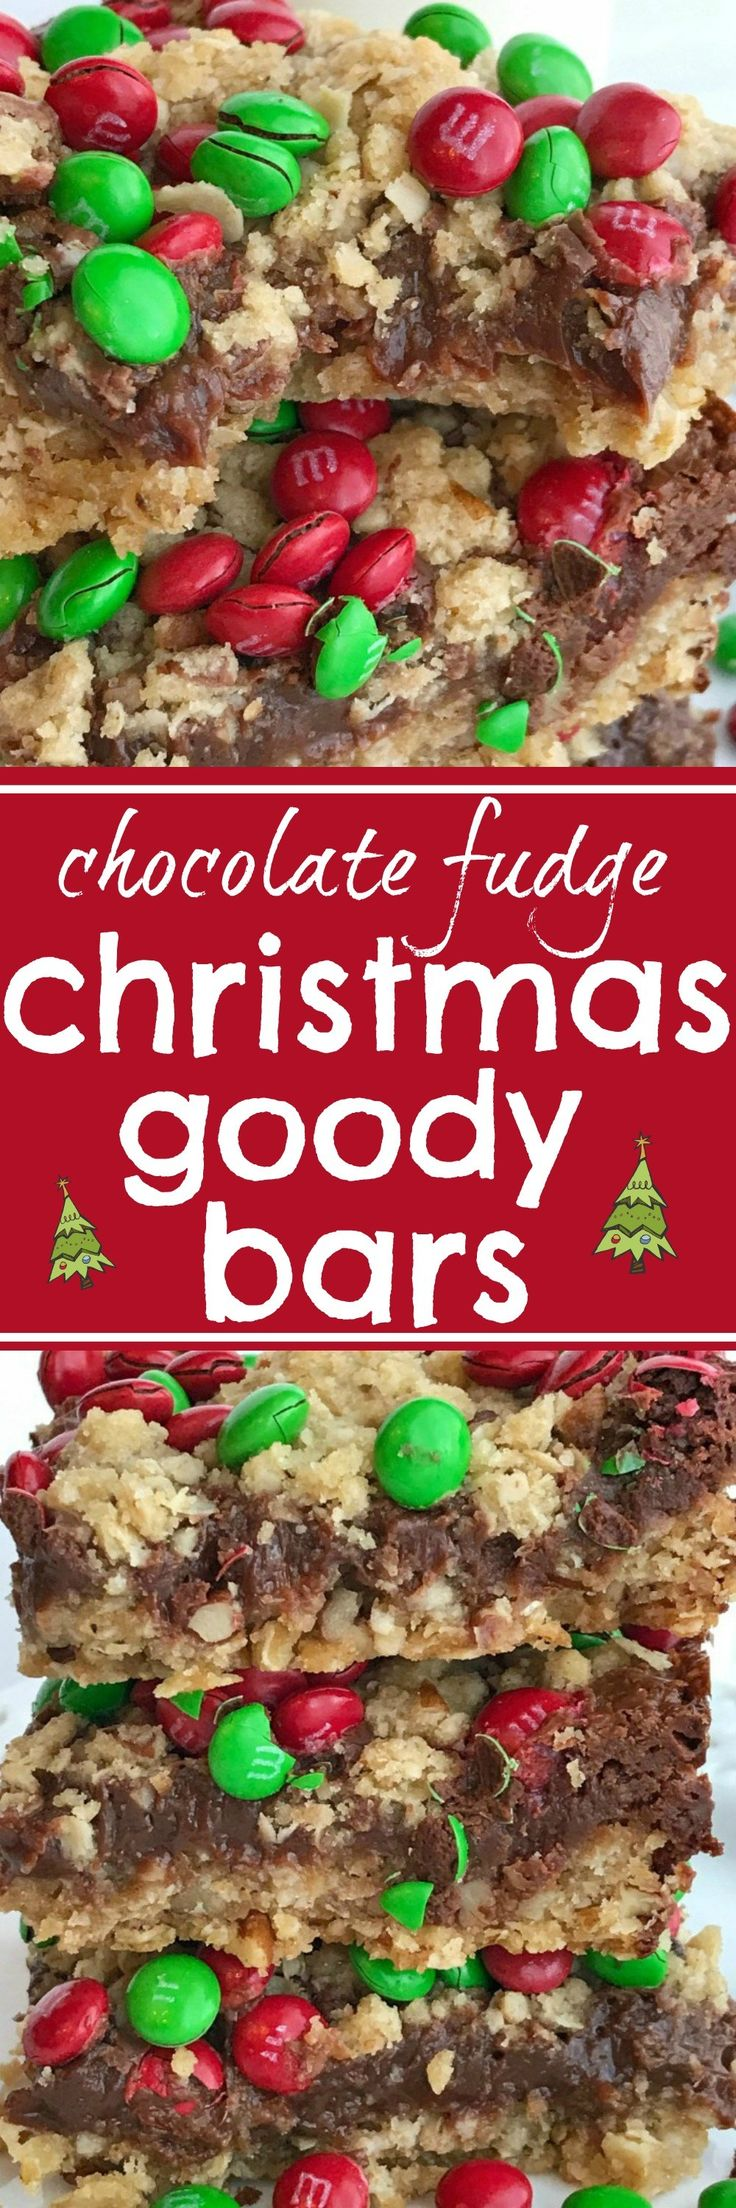 Chocolate Fudge Christmas Goody Bars  | Posted By: DebbieNet.com